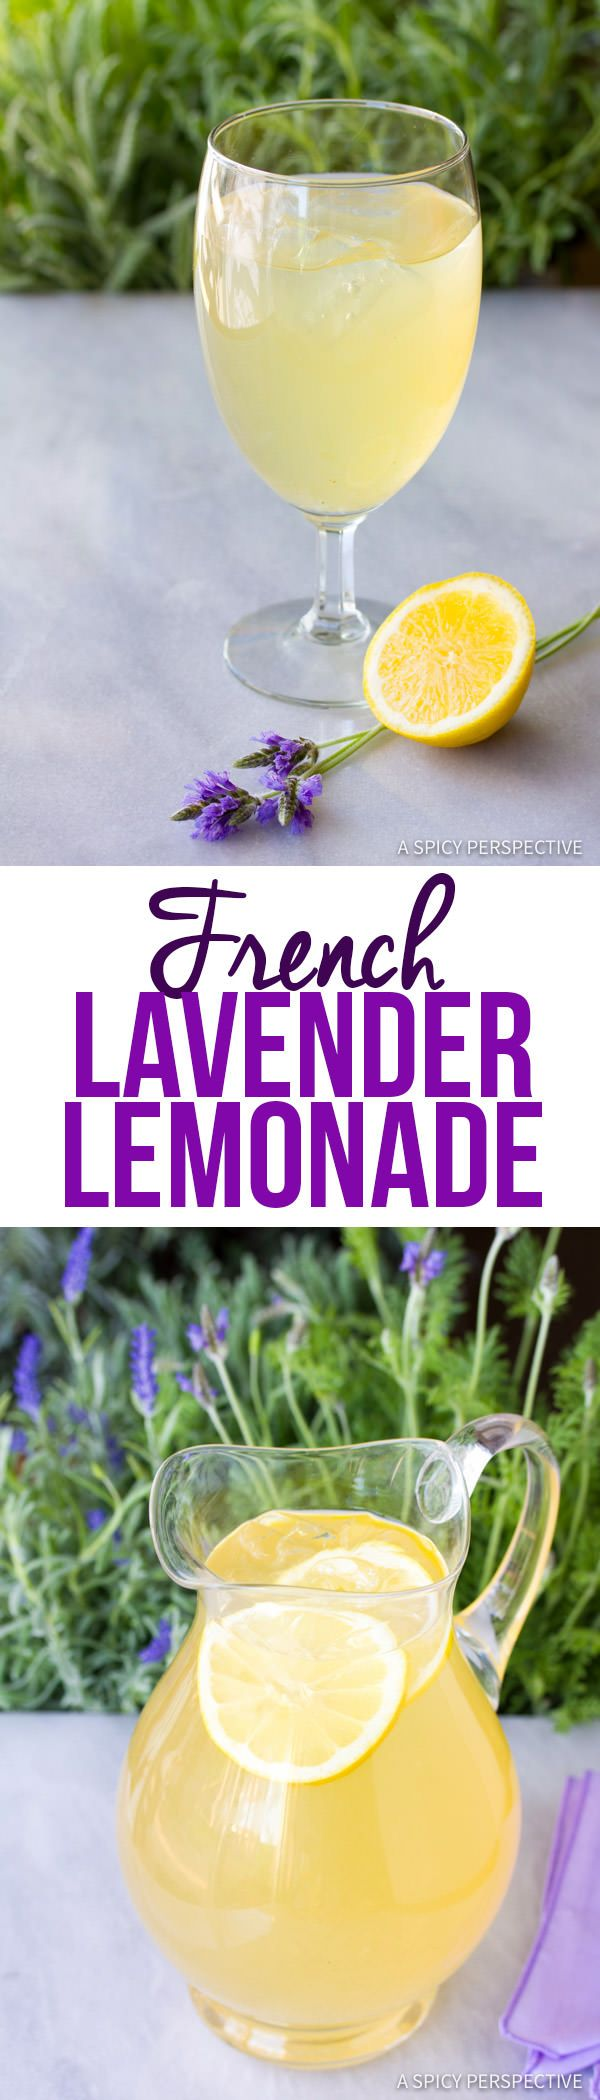 Perfect French Lavender Lemonade Recipe | ASpicyPerspective.com                                                                                                                                                                                 More